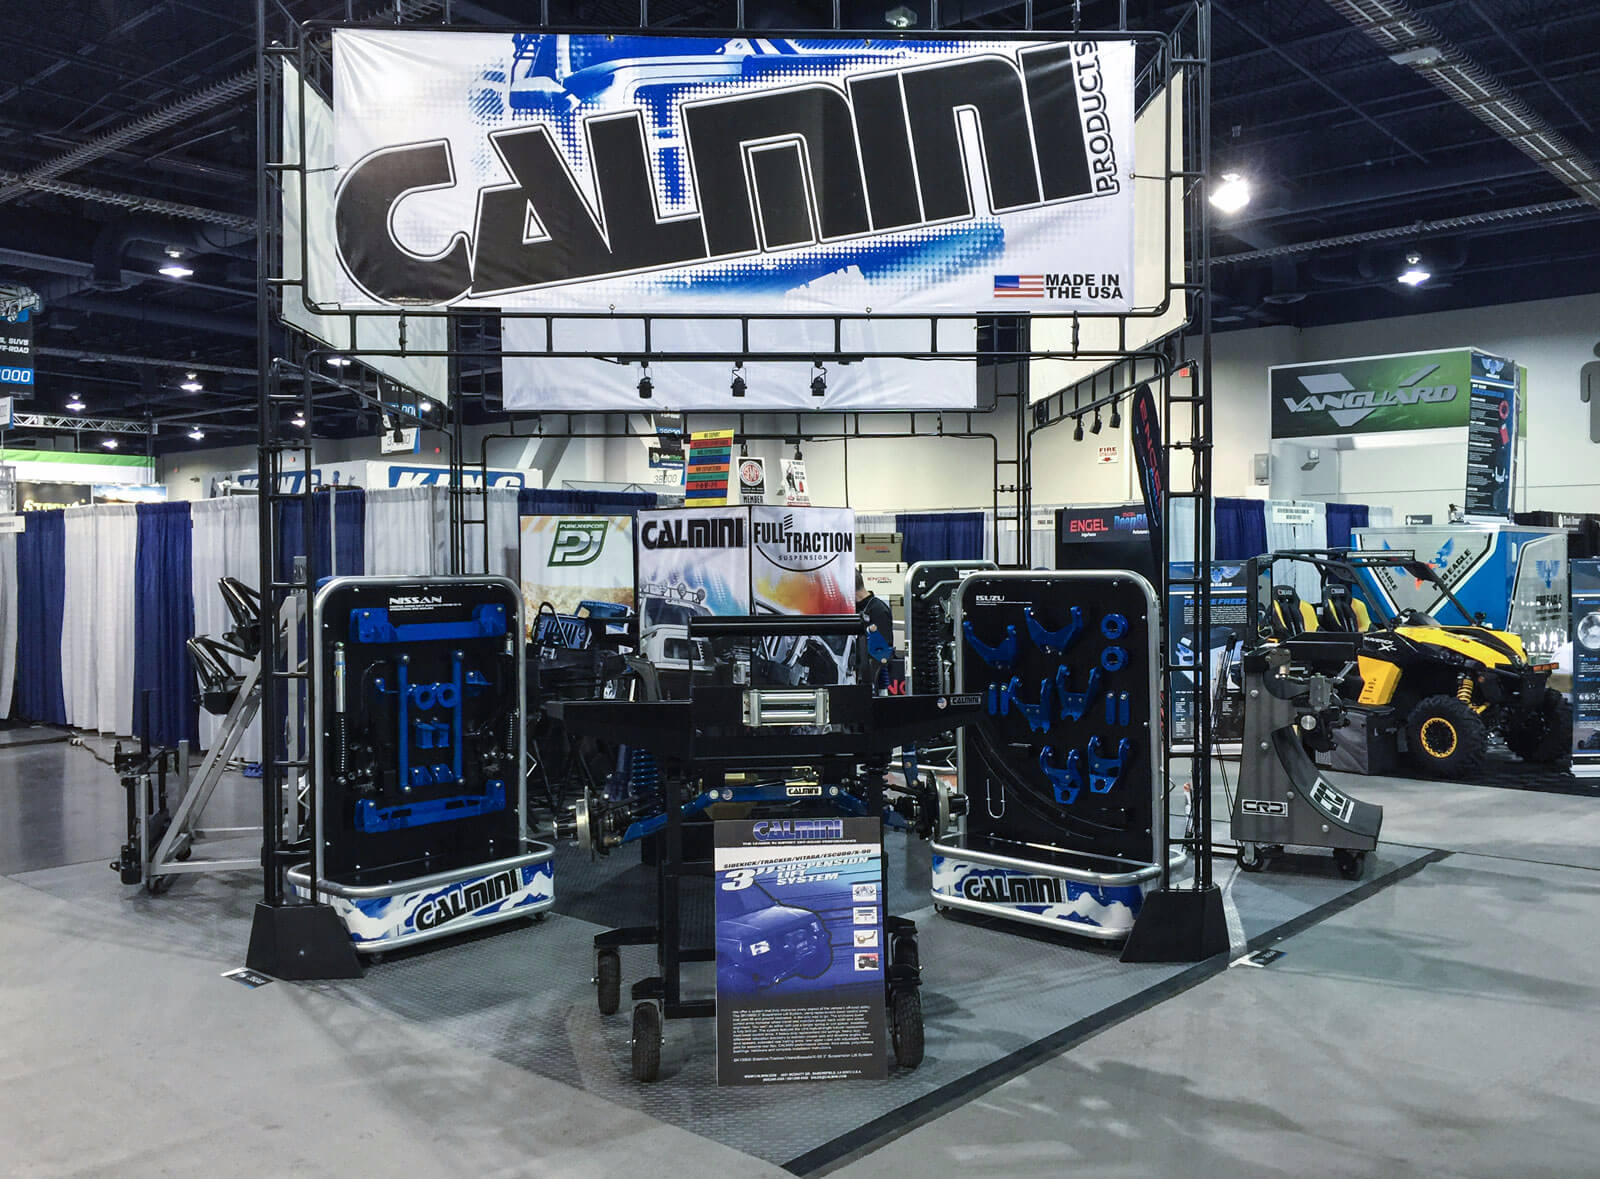 Calnini display with RaceDeck Diamond tiles